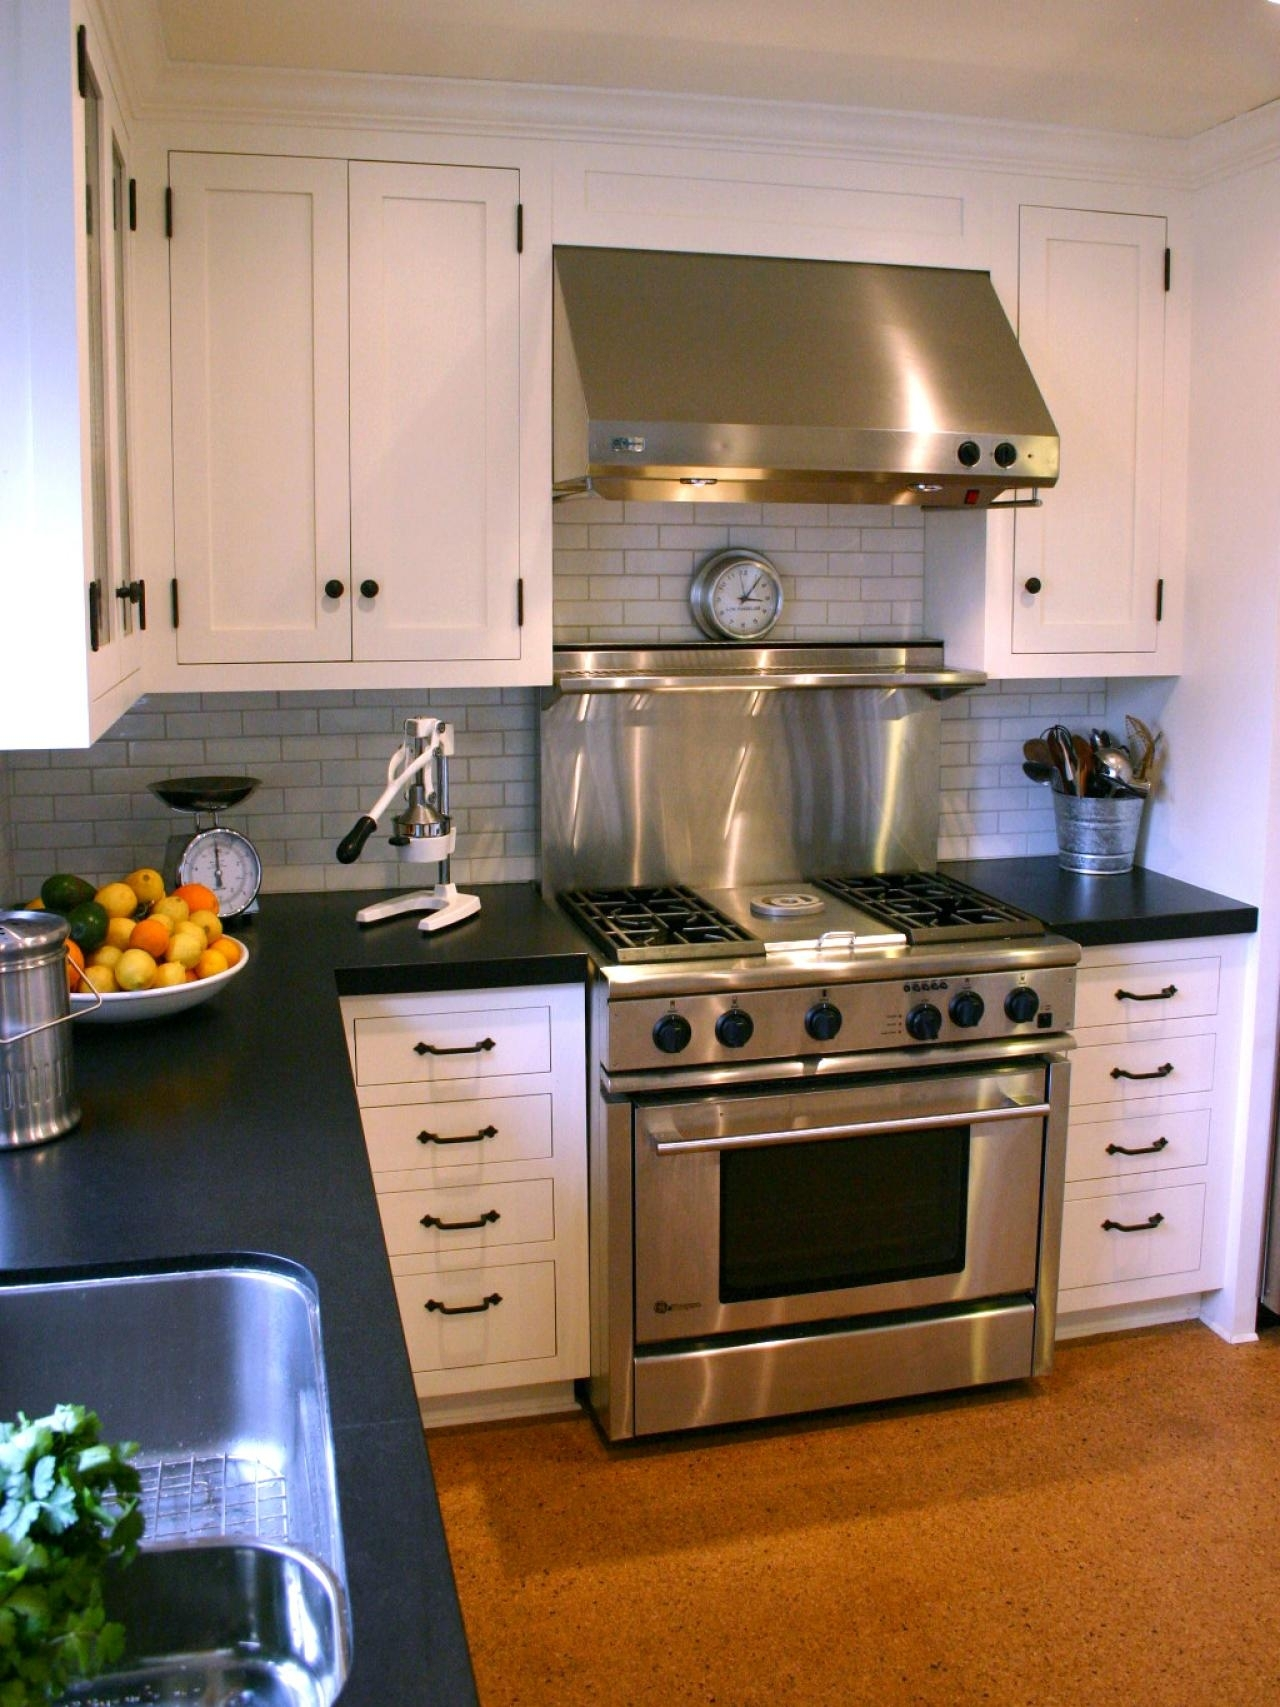 10 Spectacular Kitchen Countertop Ideas With White Cabinets %name 2020